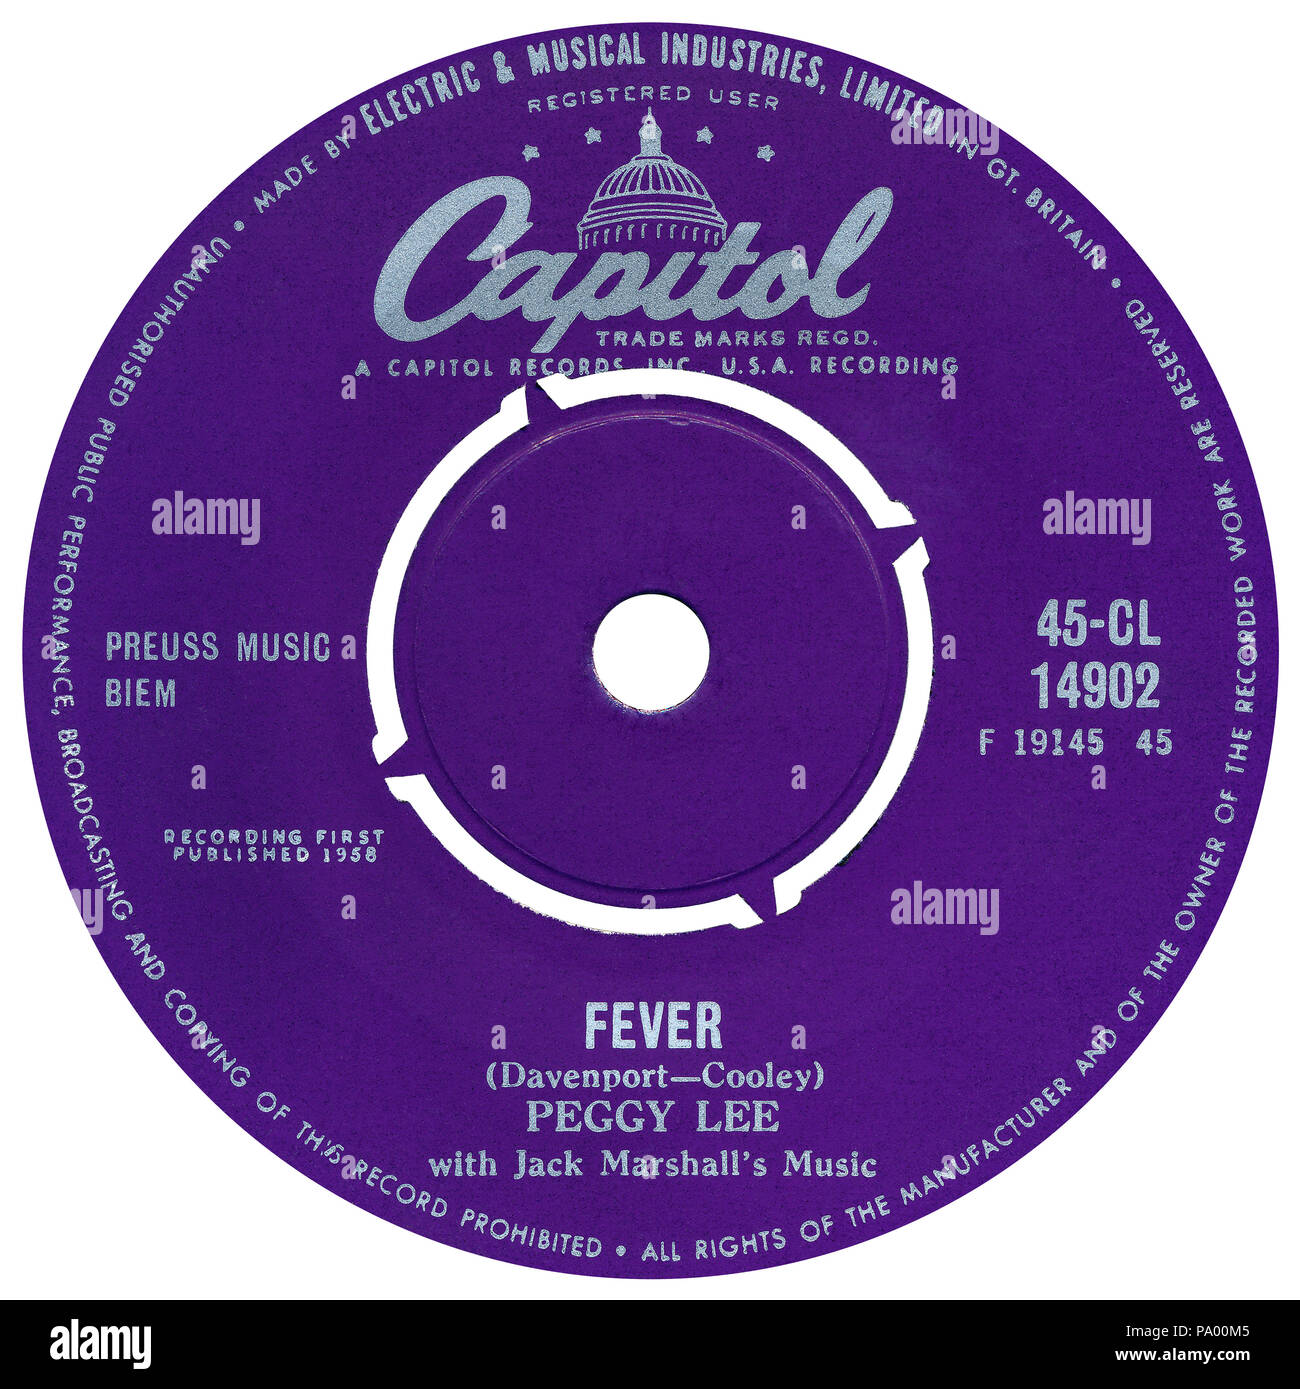 """UK 45 rpm 7"""" single of Fever by Peggy Lee on the Capitol label from 1958. Written by Eddie Cooley and Otis Blackwell (as John Davenport) and produced by Dave Cavanaugh. Stock Photo"""